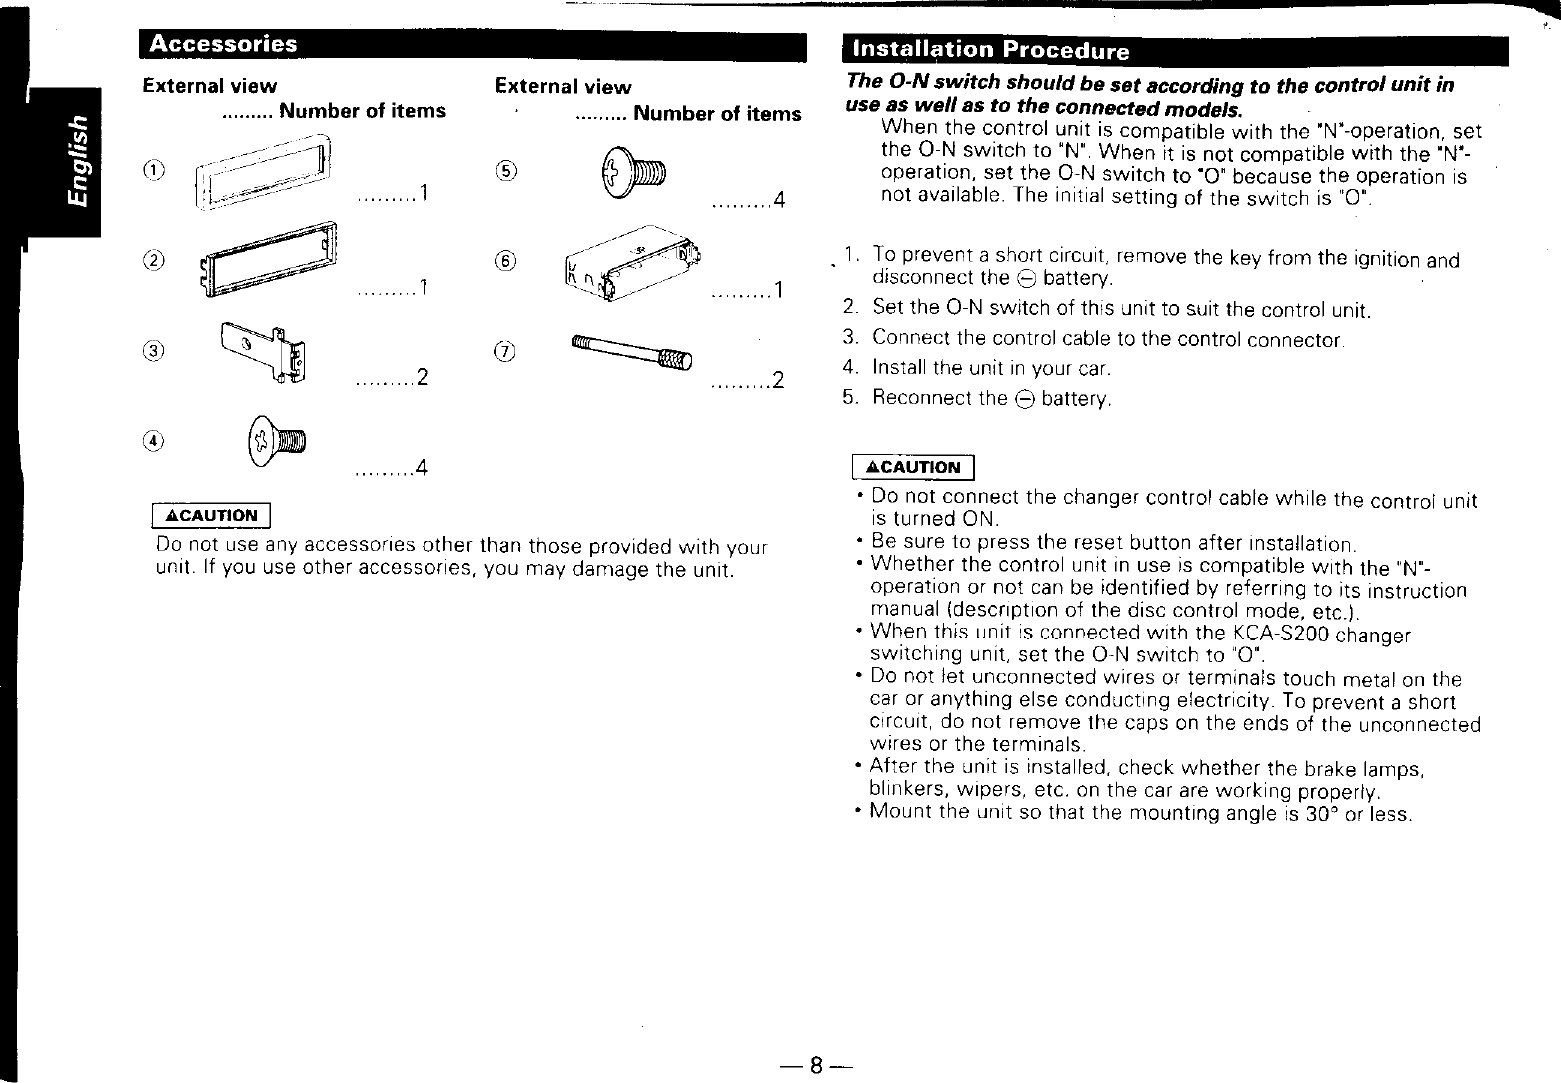 Kenwood Kdc P200 Owner S Manual Wiring Diagram Page 8 Of 12